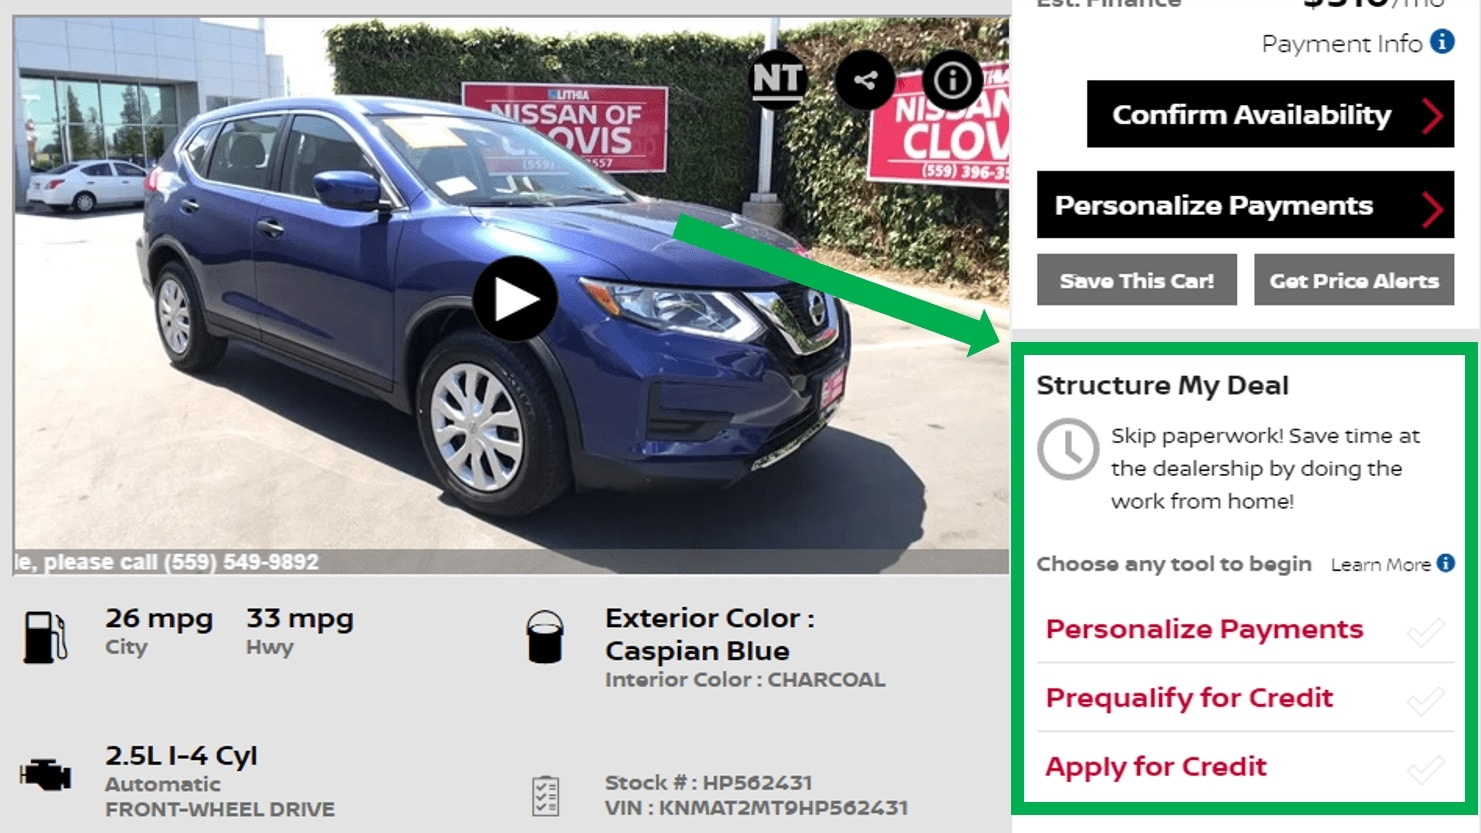 Nissan Of Clovis >> Nissan Financing Save Time At Lithia Nissan Of Clovis Pre Qualify Now